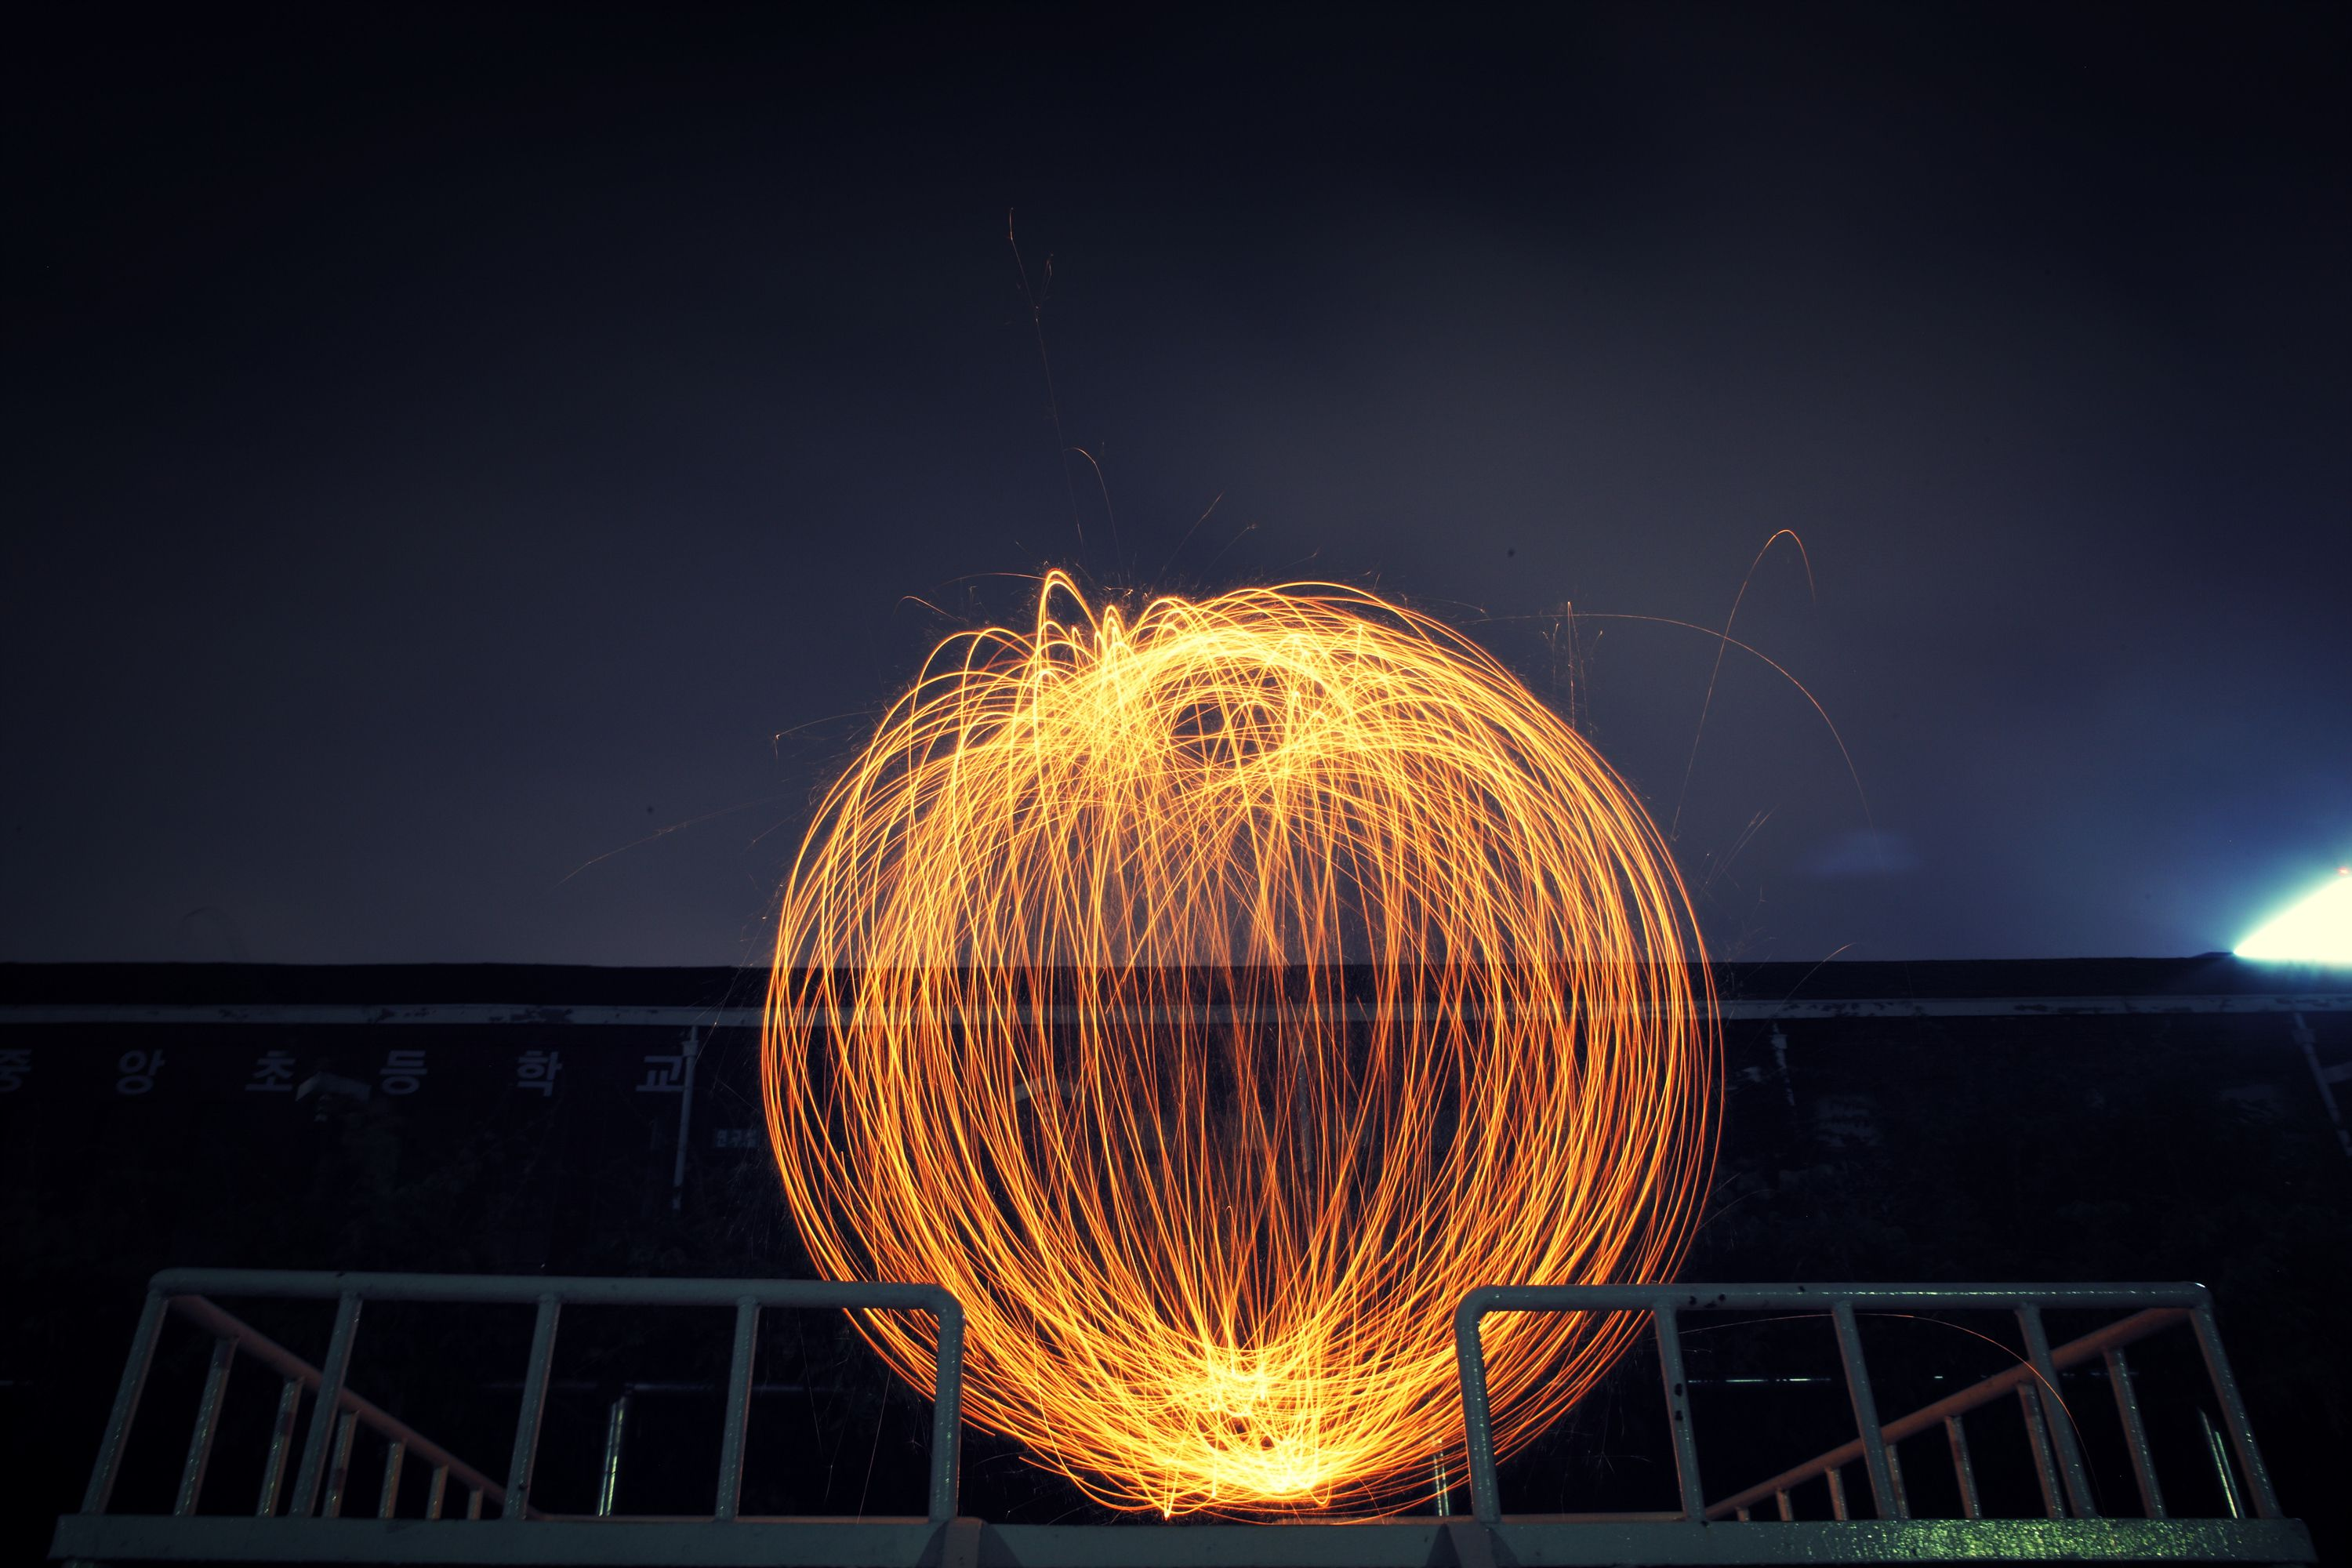 fire ball  Copyright (C) 정성영. All rights reserved. inurface.blog.me